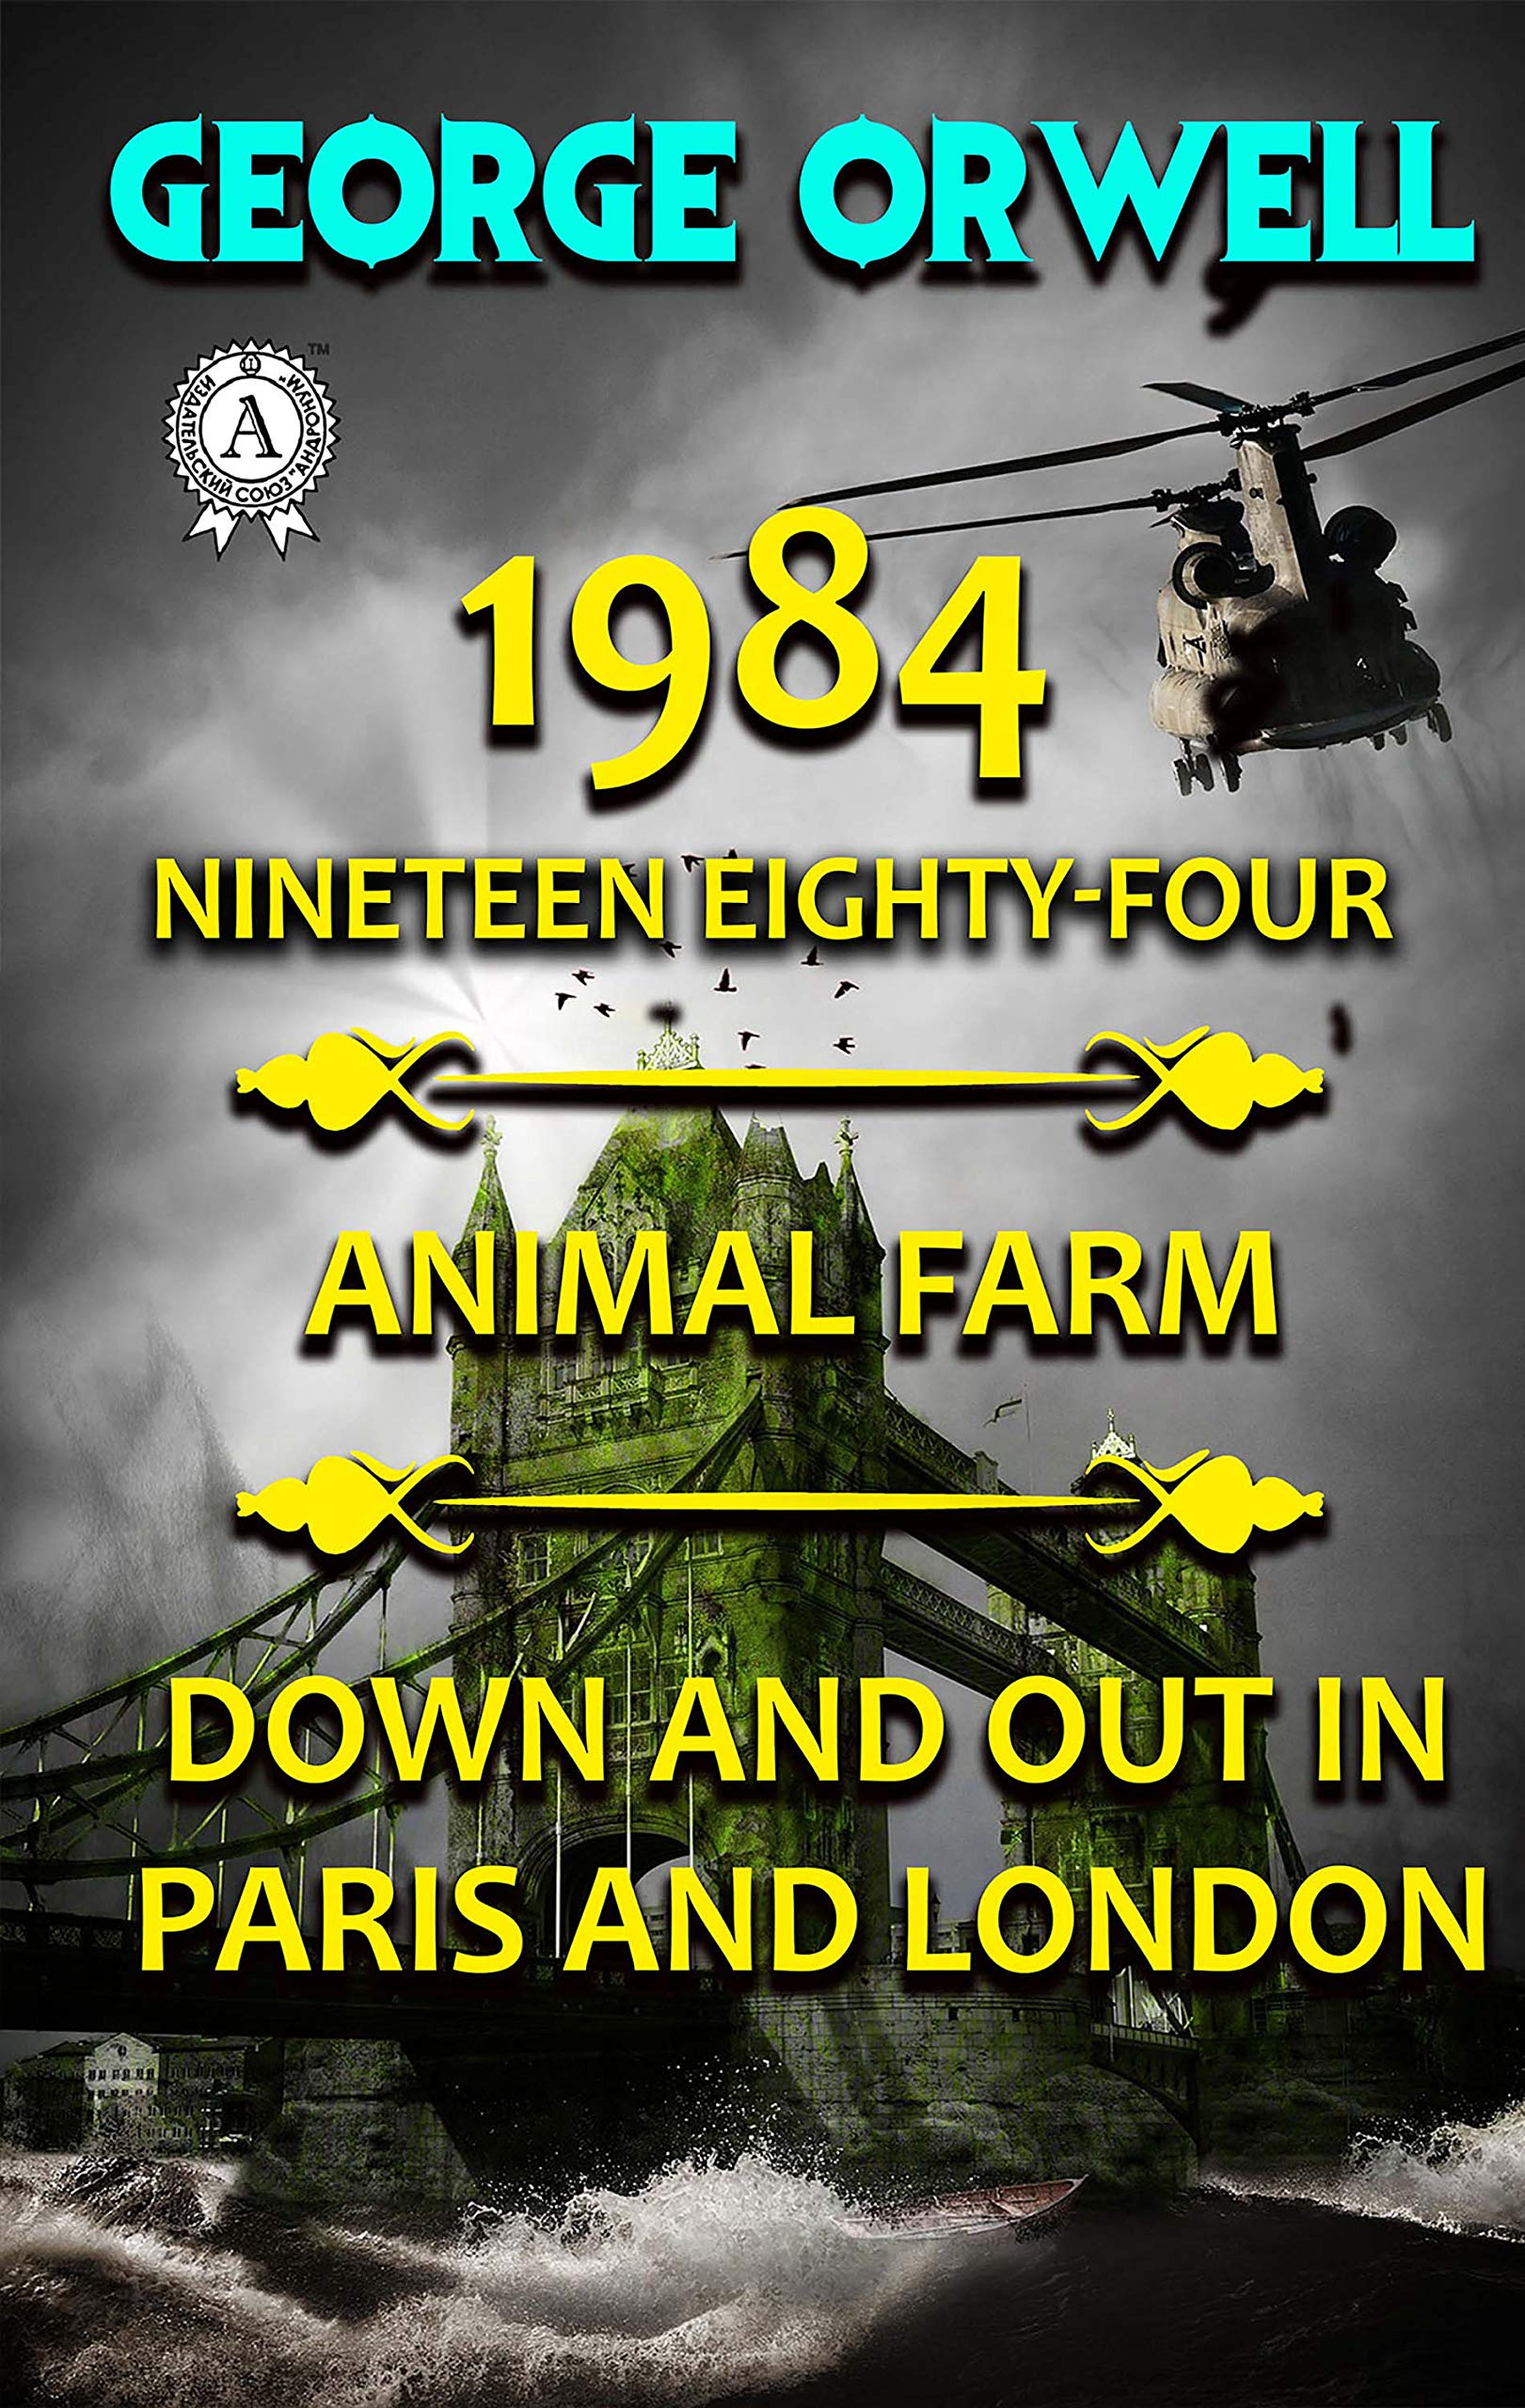 1984. Nineteen Eighty-Four. Animal Farm. Down and Out In Paris and London